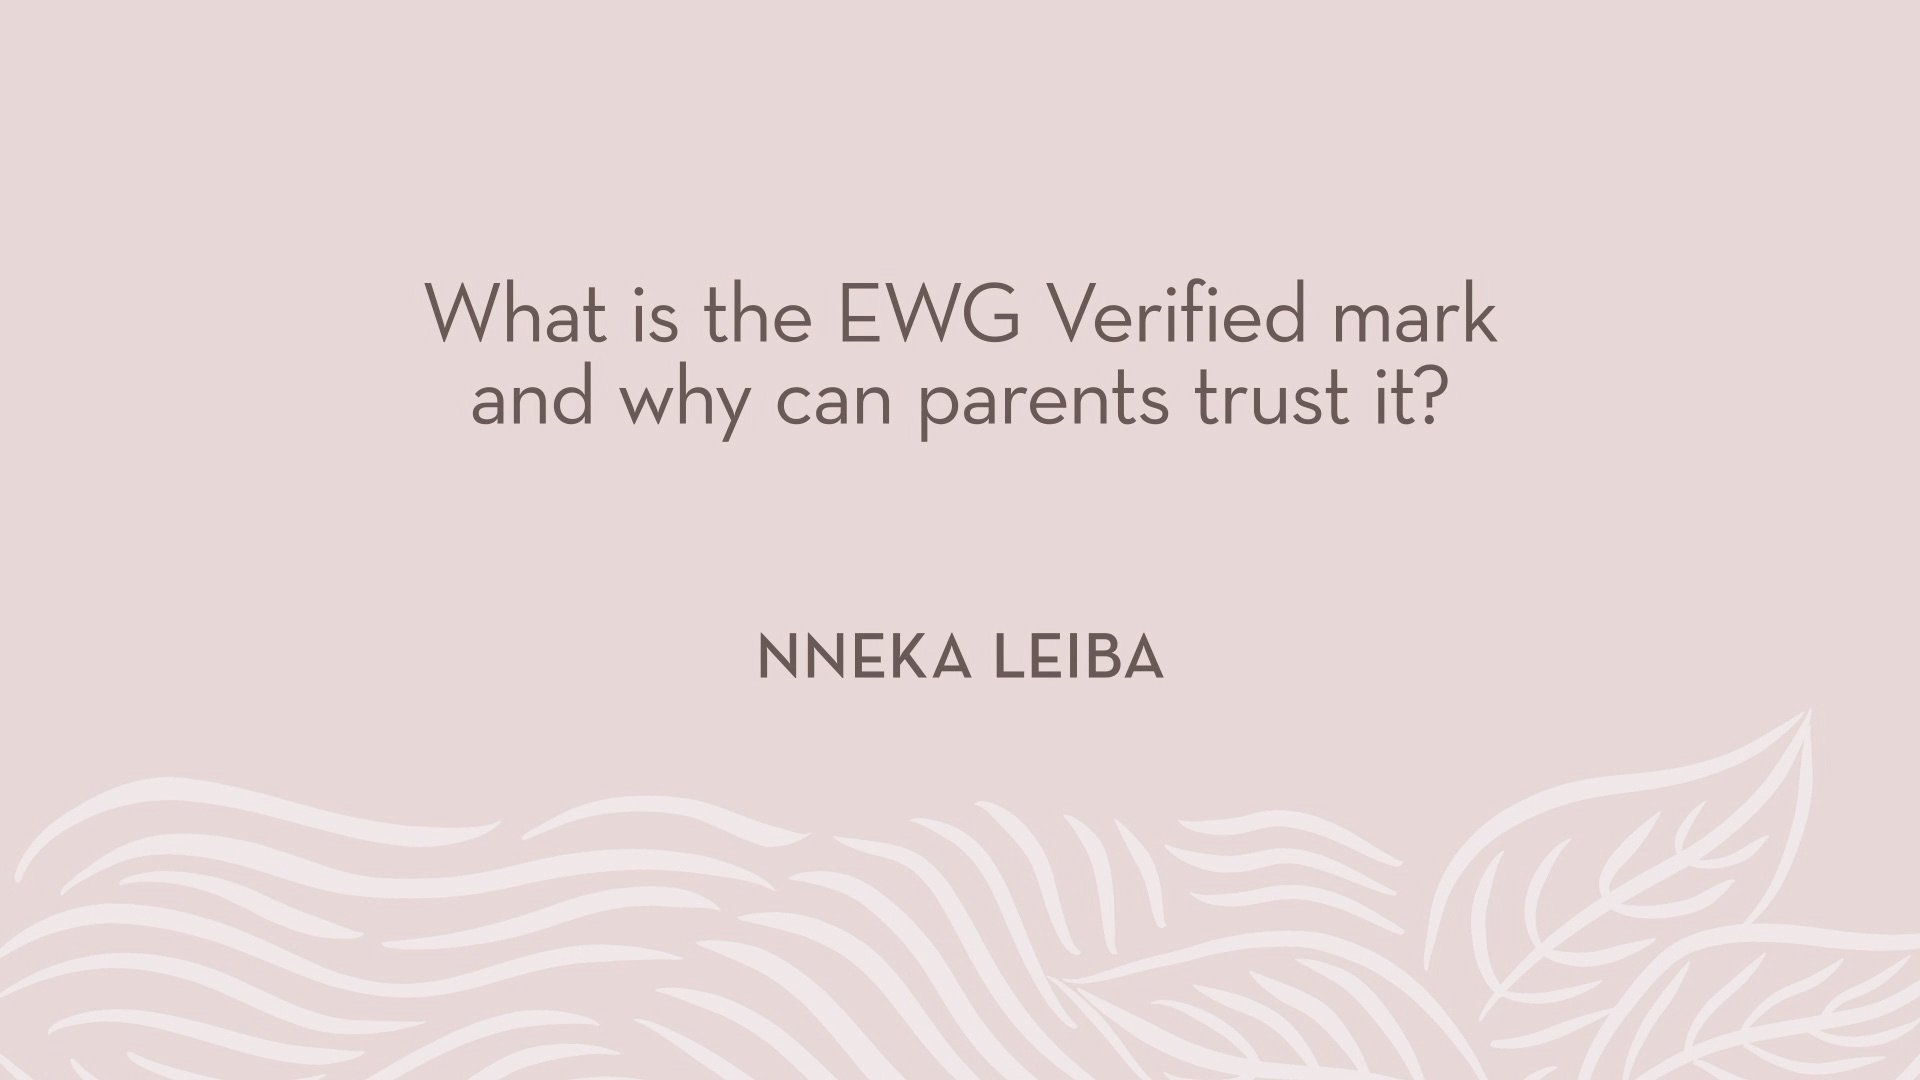 Nneka Leiba | What is the EWG Verified mark and why can parents trust it?